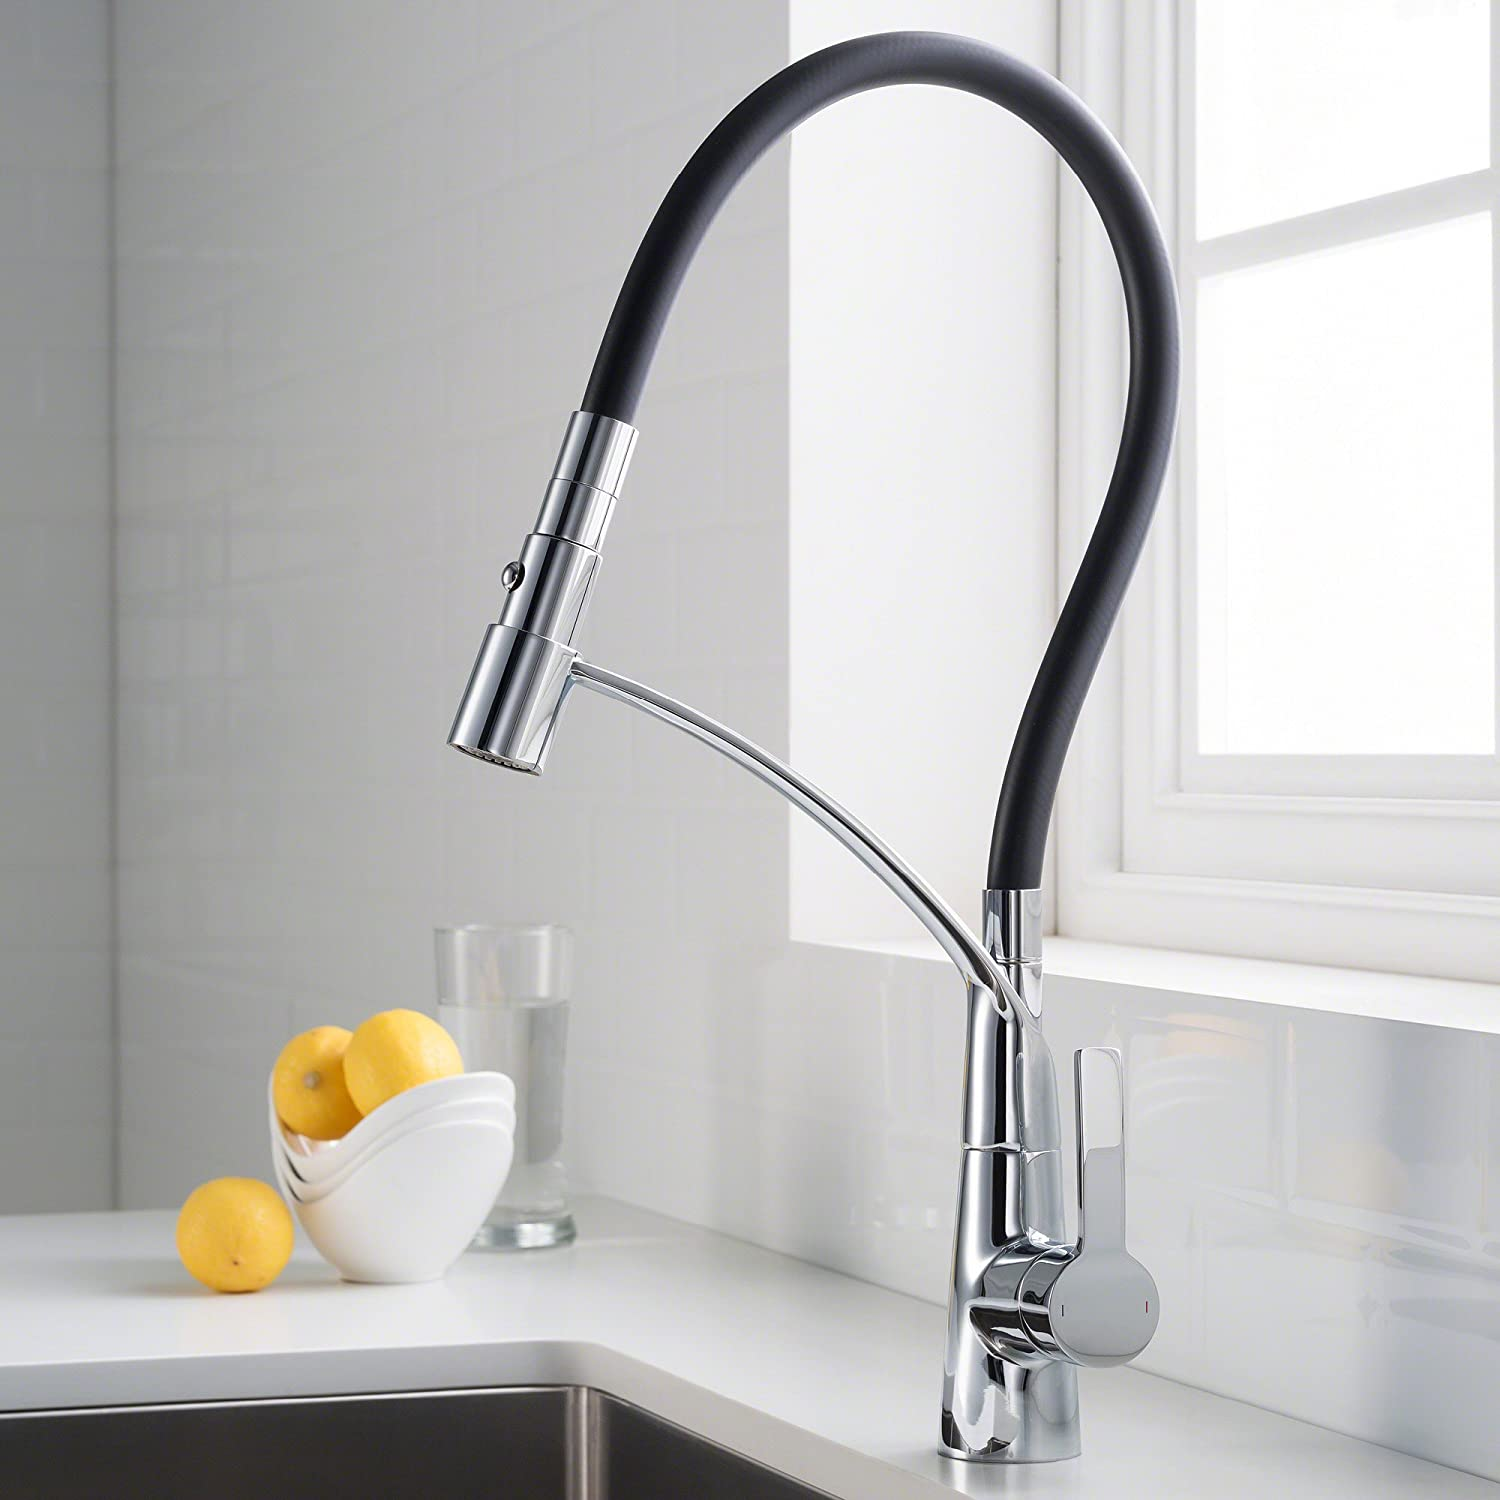 KRAUS CarboFlex Single Handle Dual Function Pull Out Kitchen Faucet with Flexible Black Sprayer Hose and Easy-Clean Silicone Nozzles in Chrome Finish